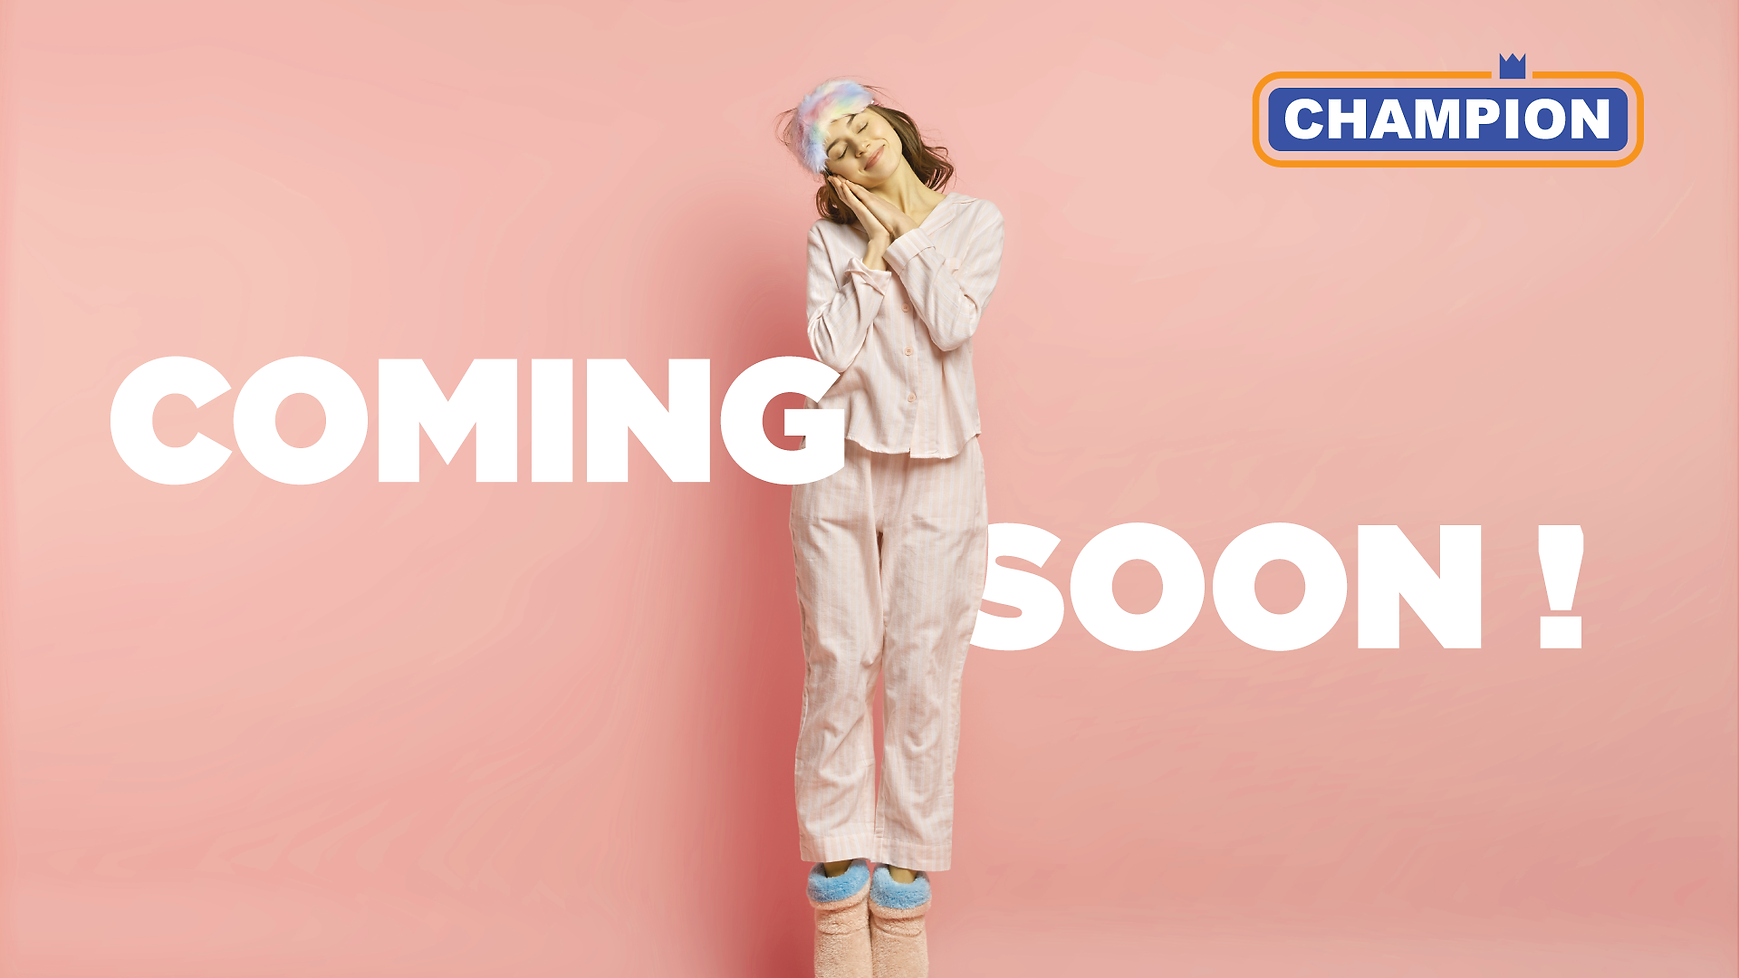 champion-coming-soon.png